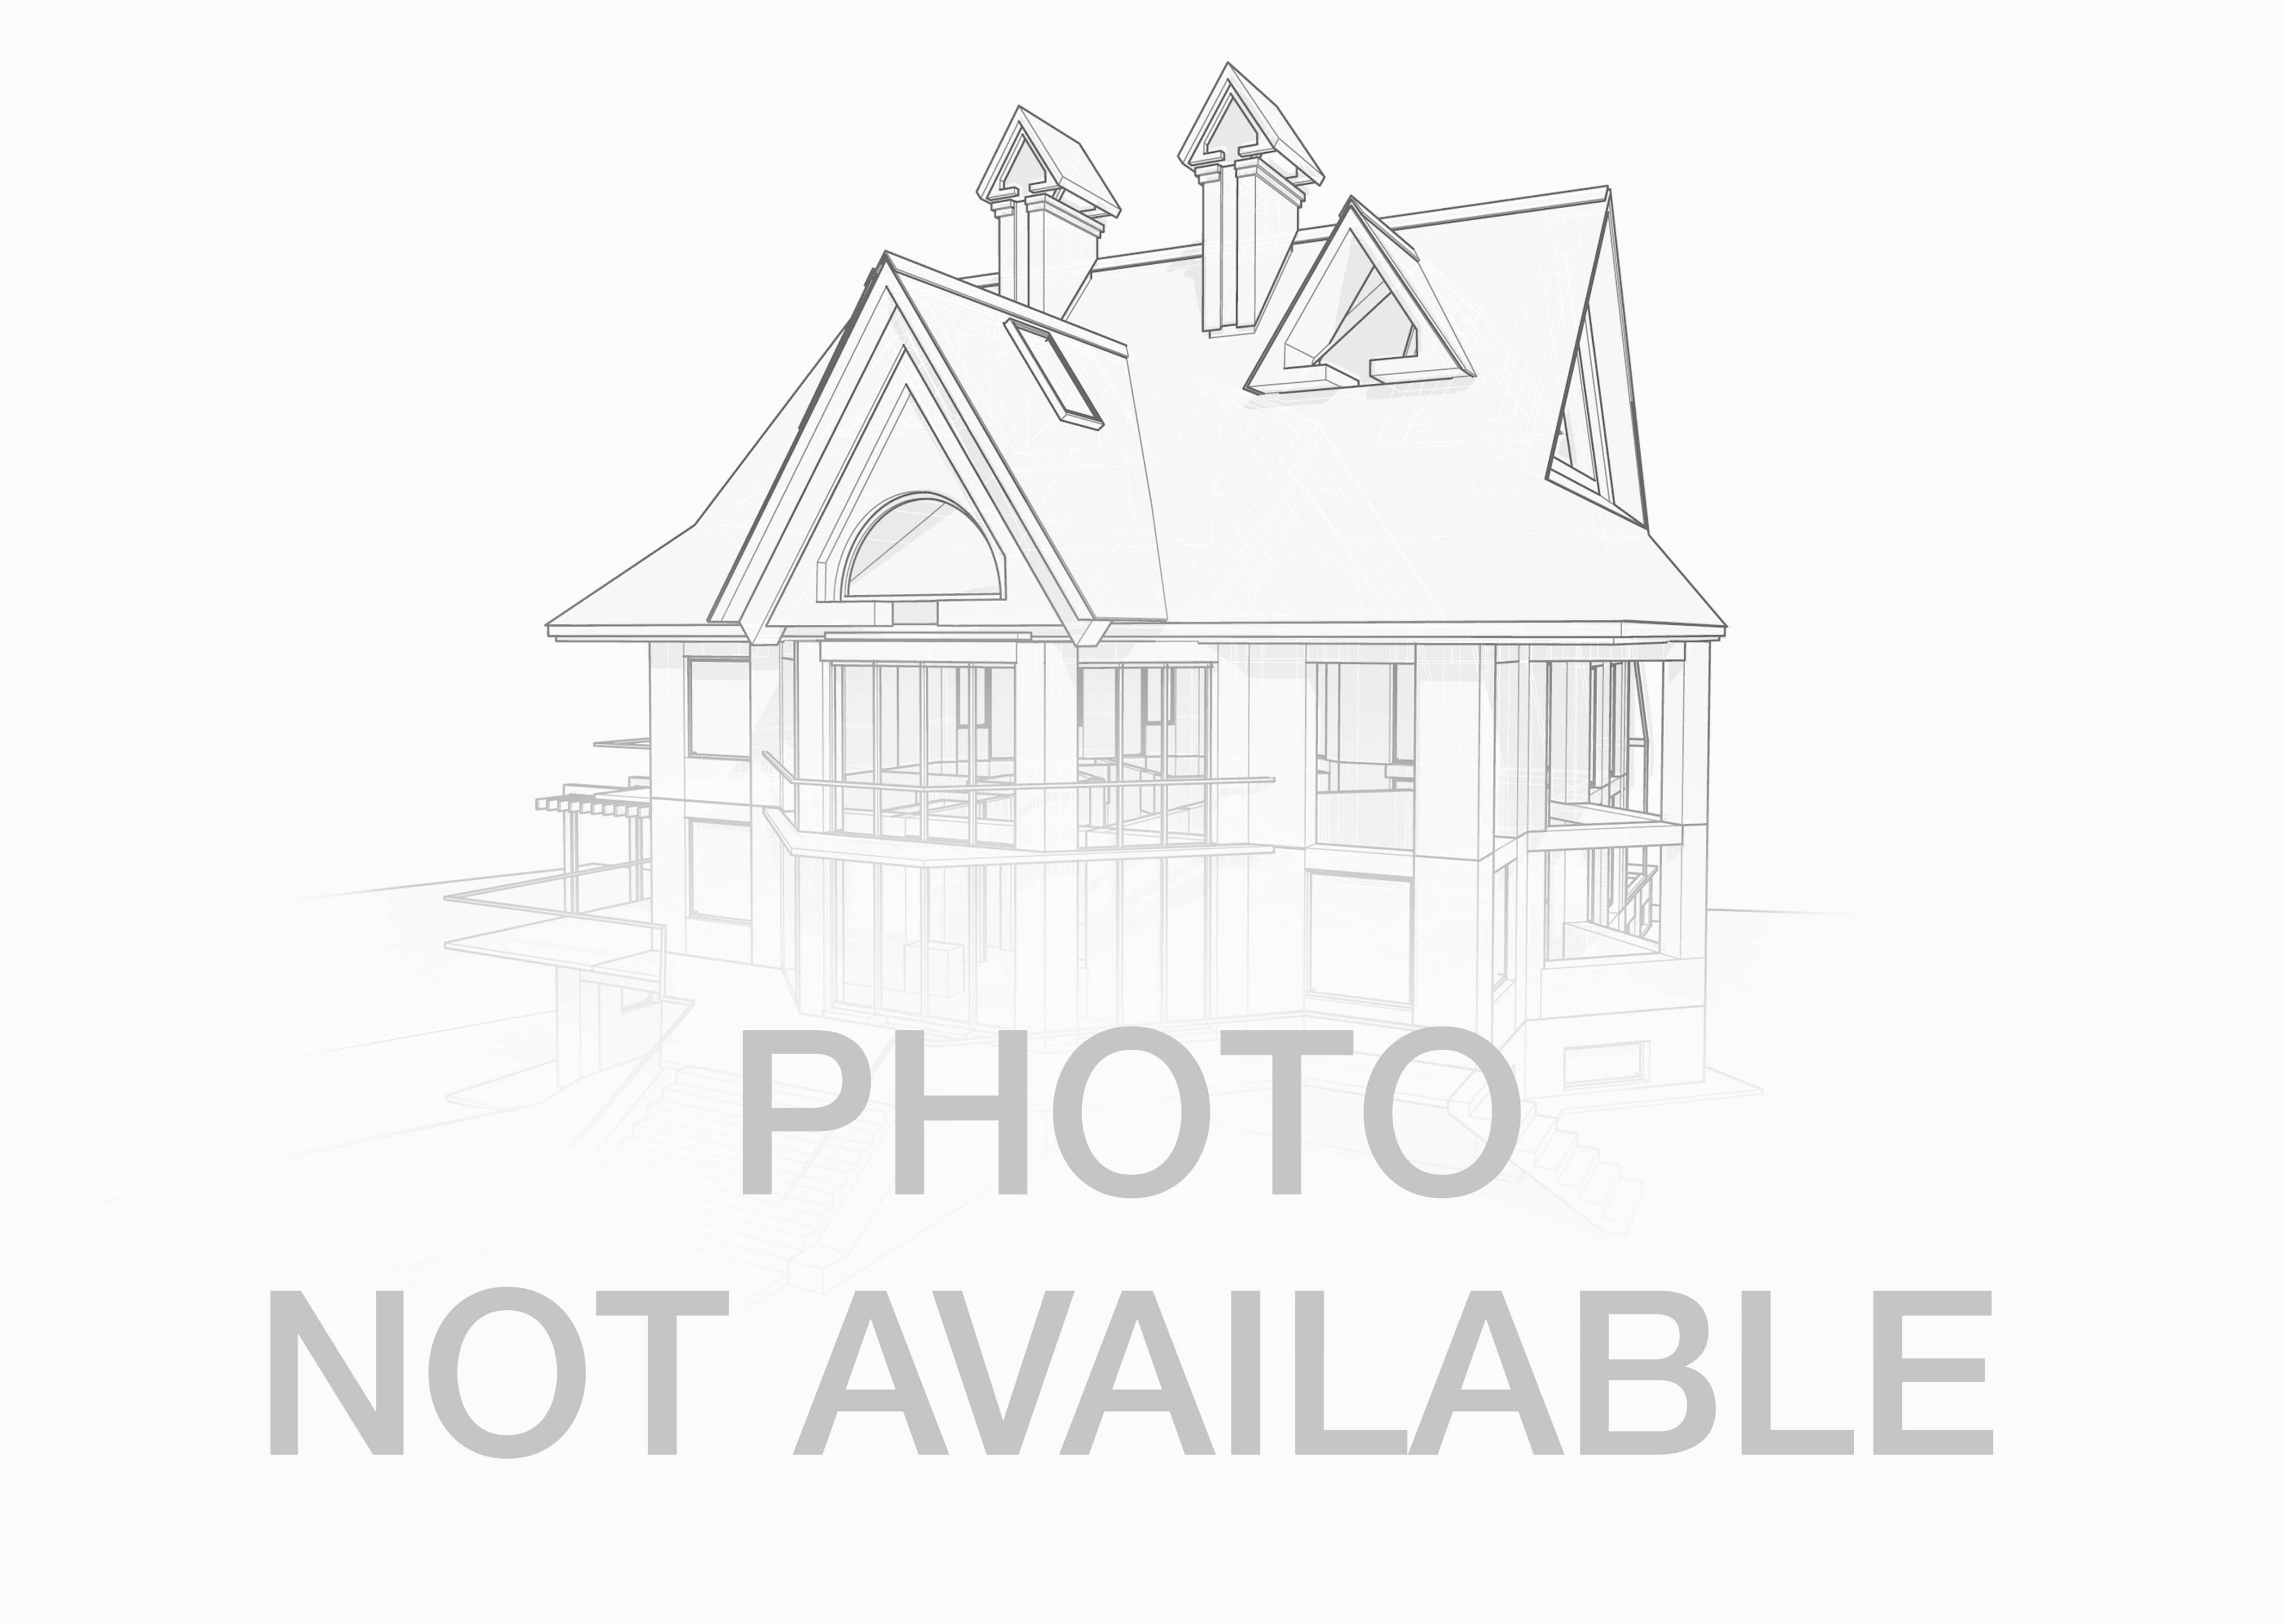 New Construction Homes In Berks County Pa